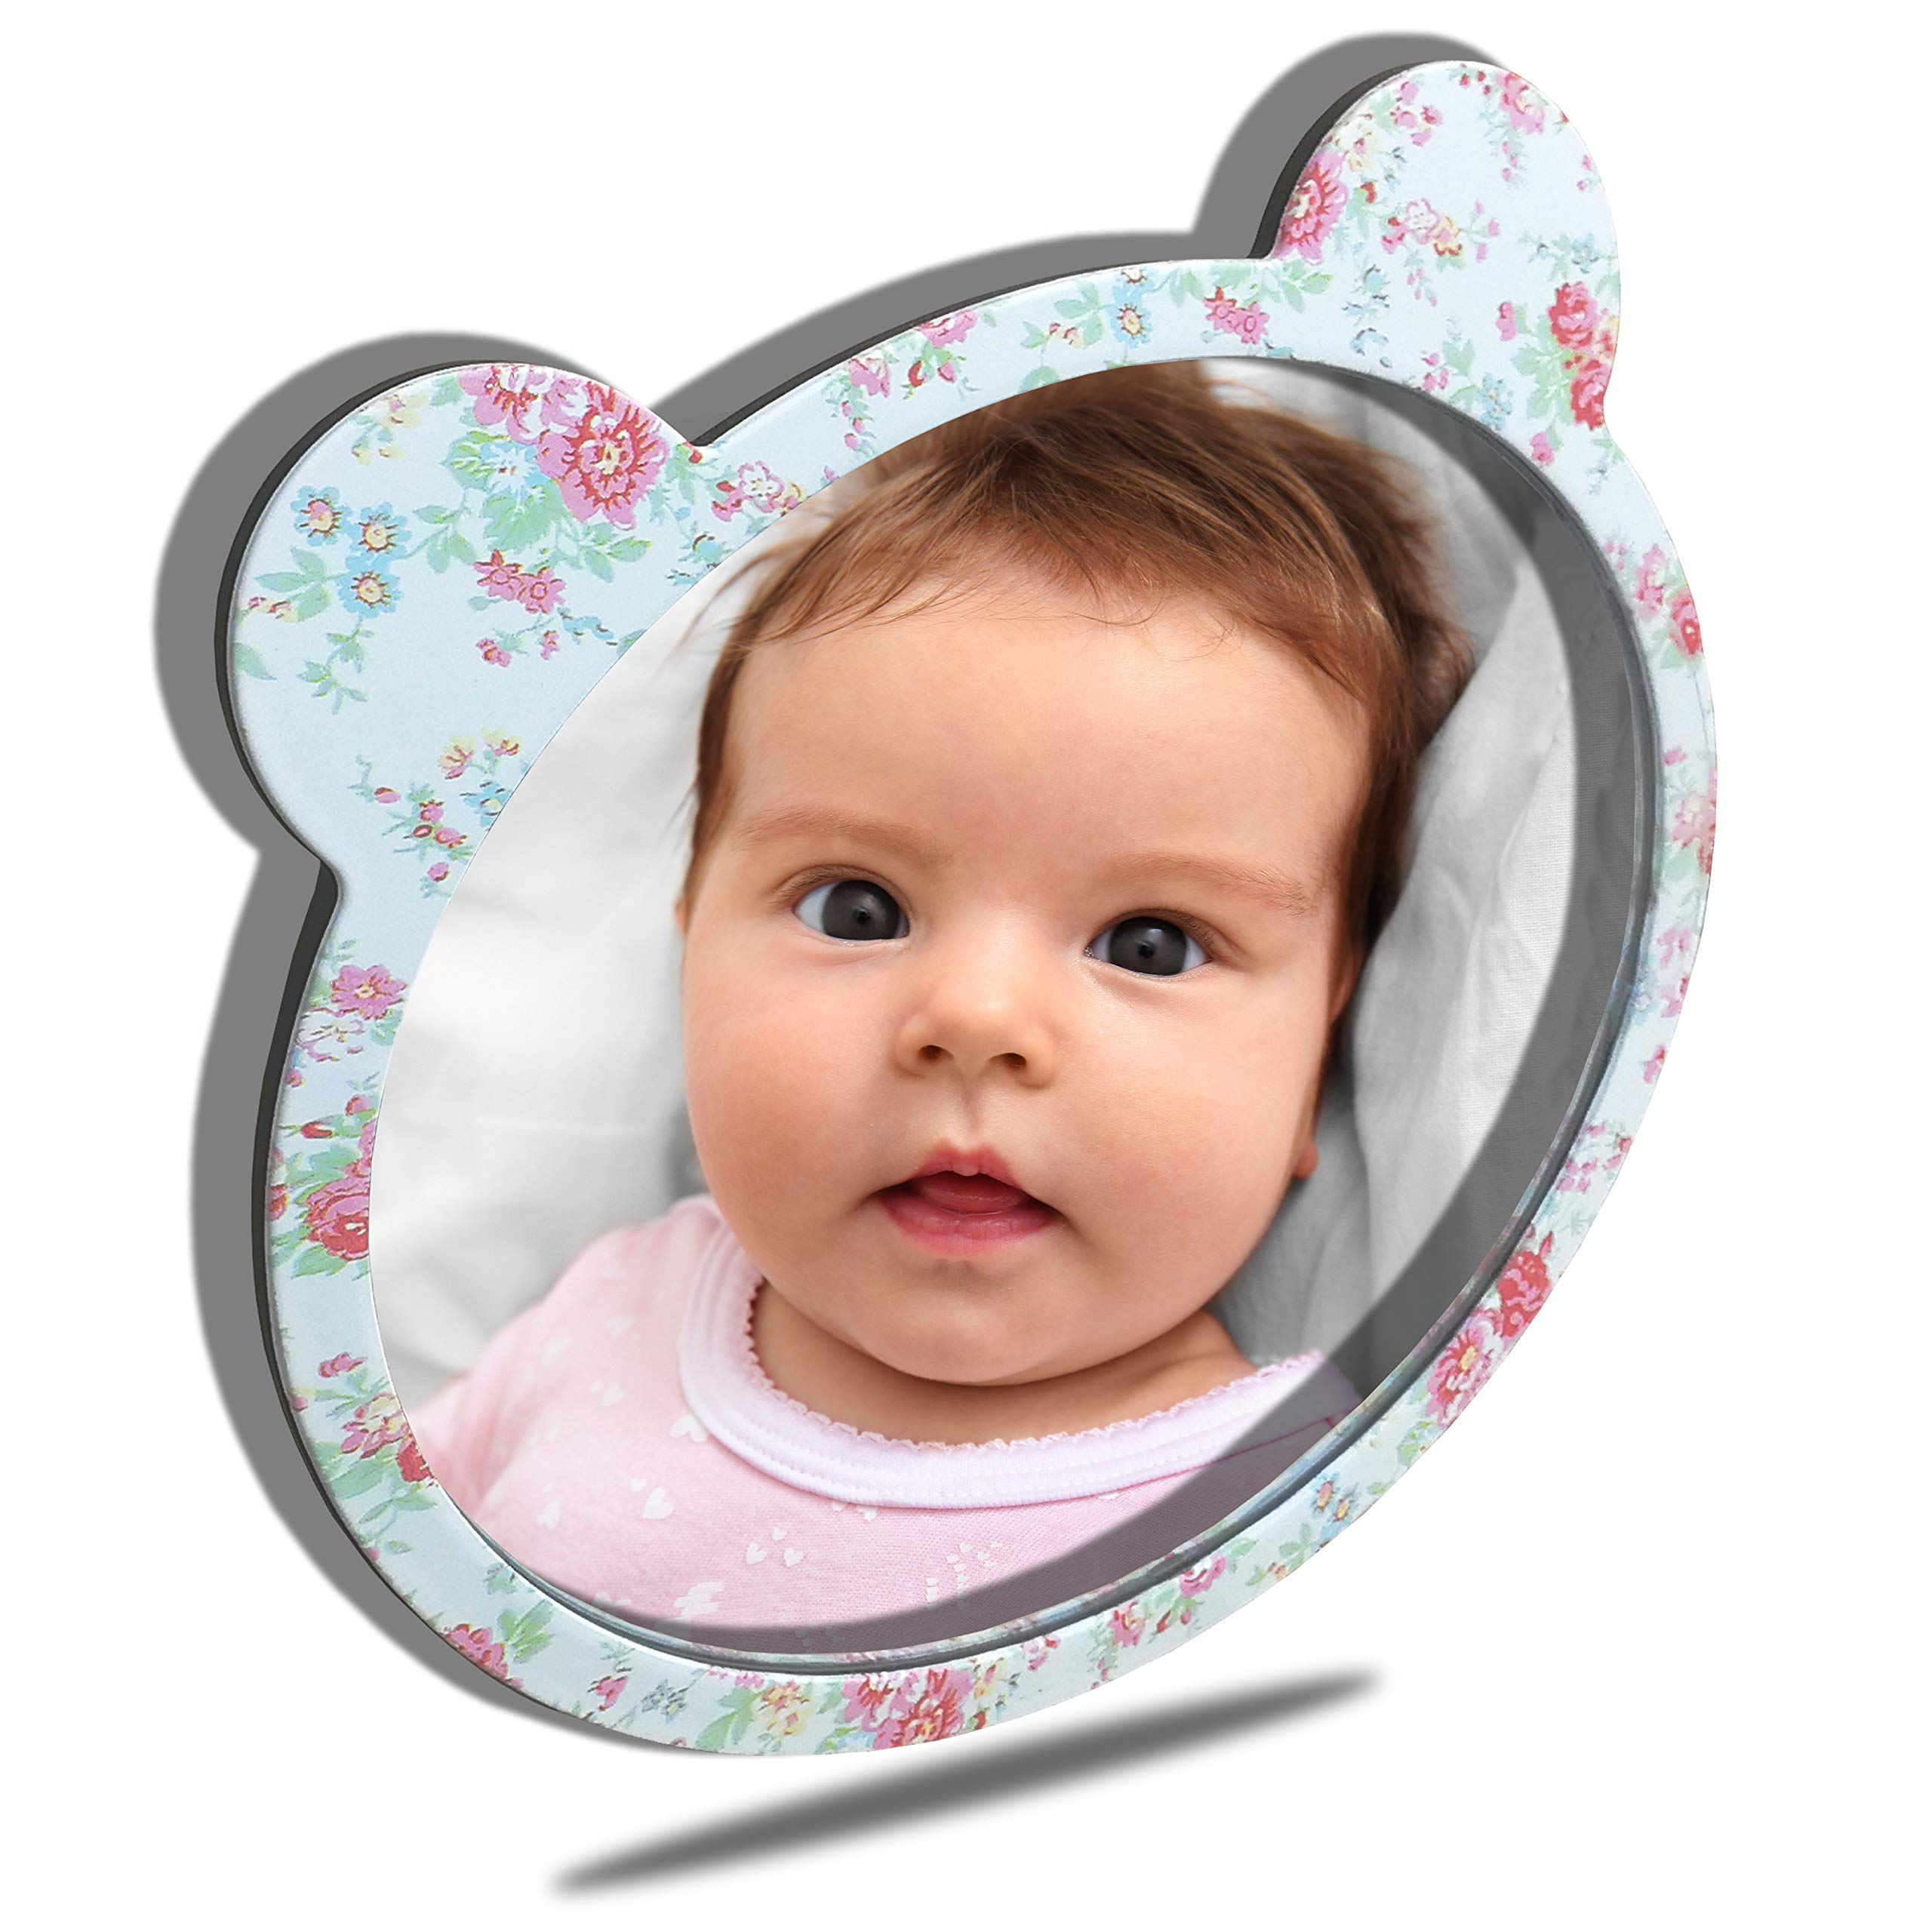 Facekyo Baby Mirror for Car | Baby Car Mirror | Baby Back Seat Mirror | Super Locking System with Rose Printing by FACEKYO